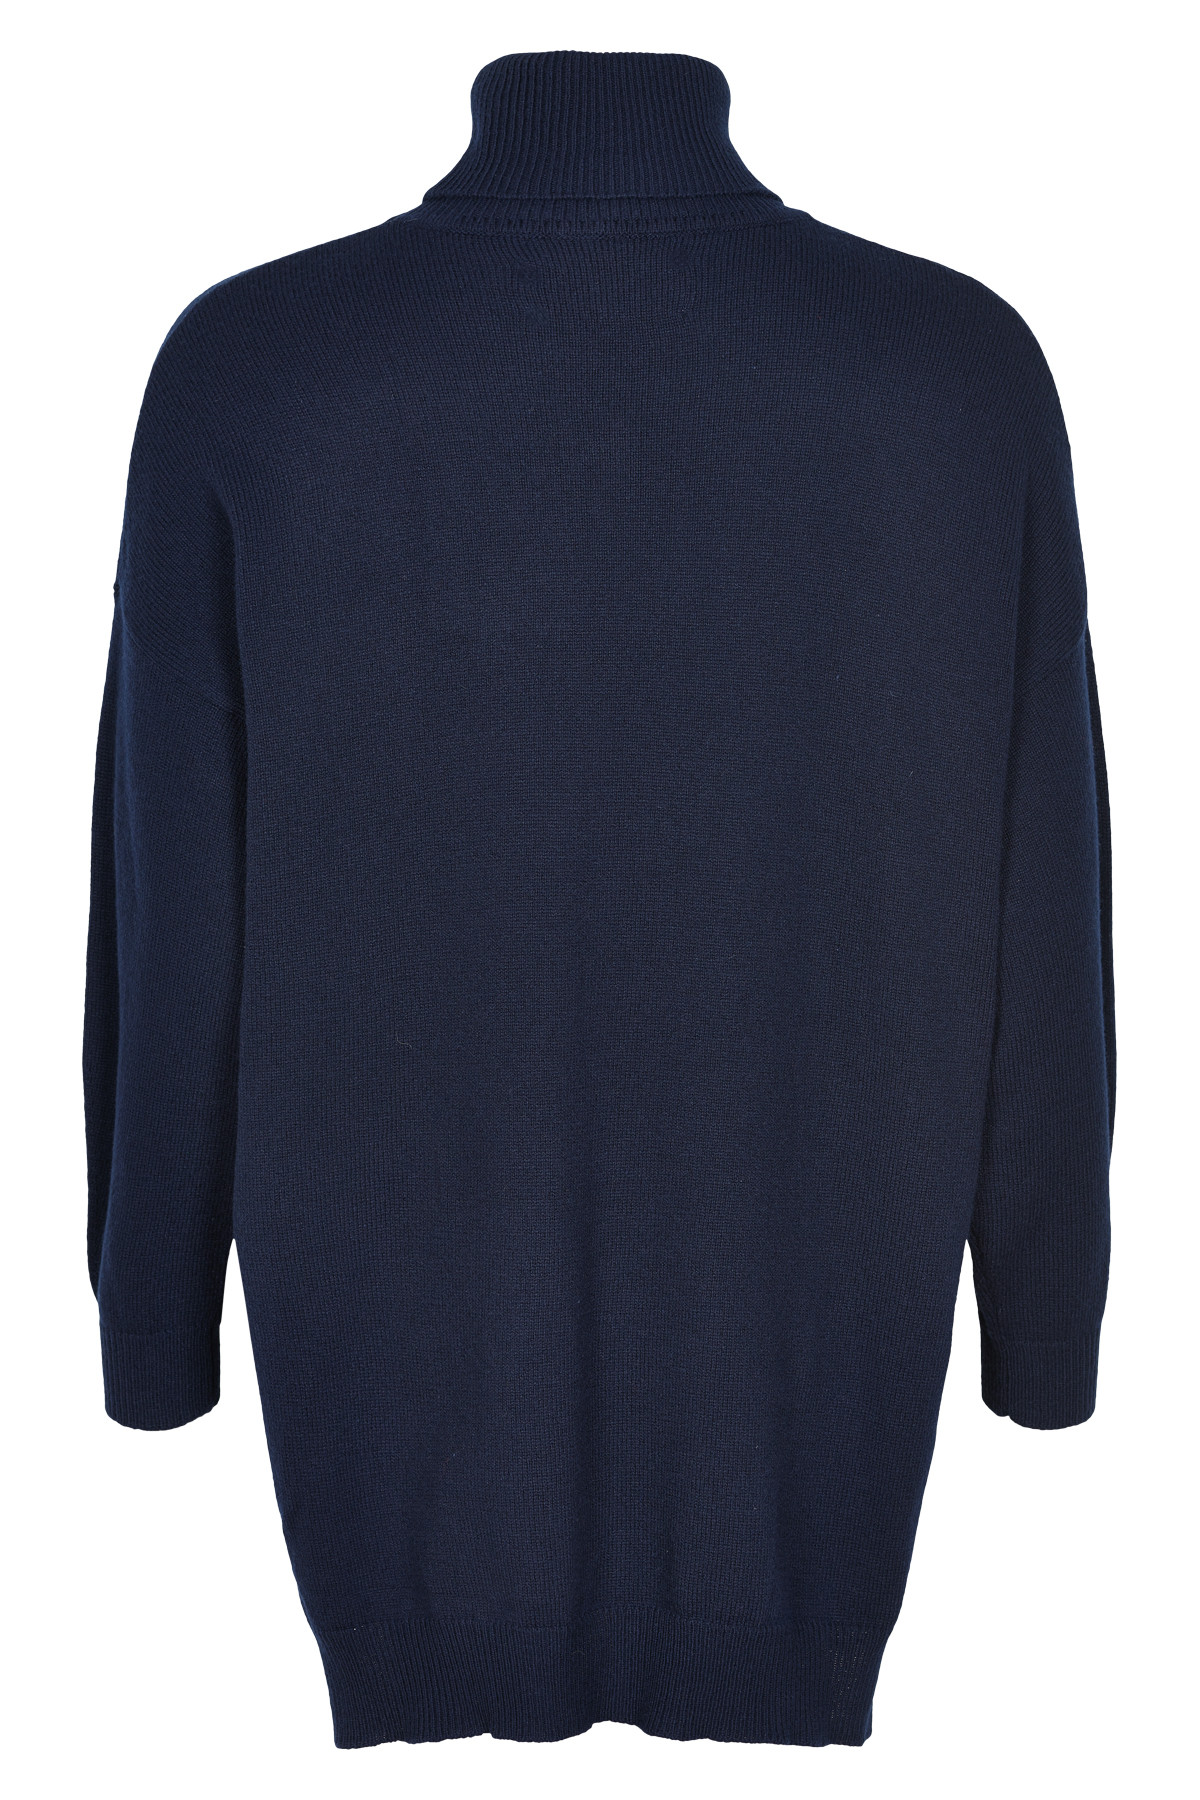 Image of   AND LESS ALLESHA PULLOVER 5519214 (Blue Nights, S)